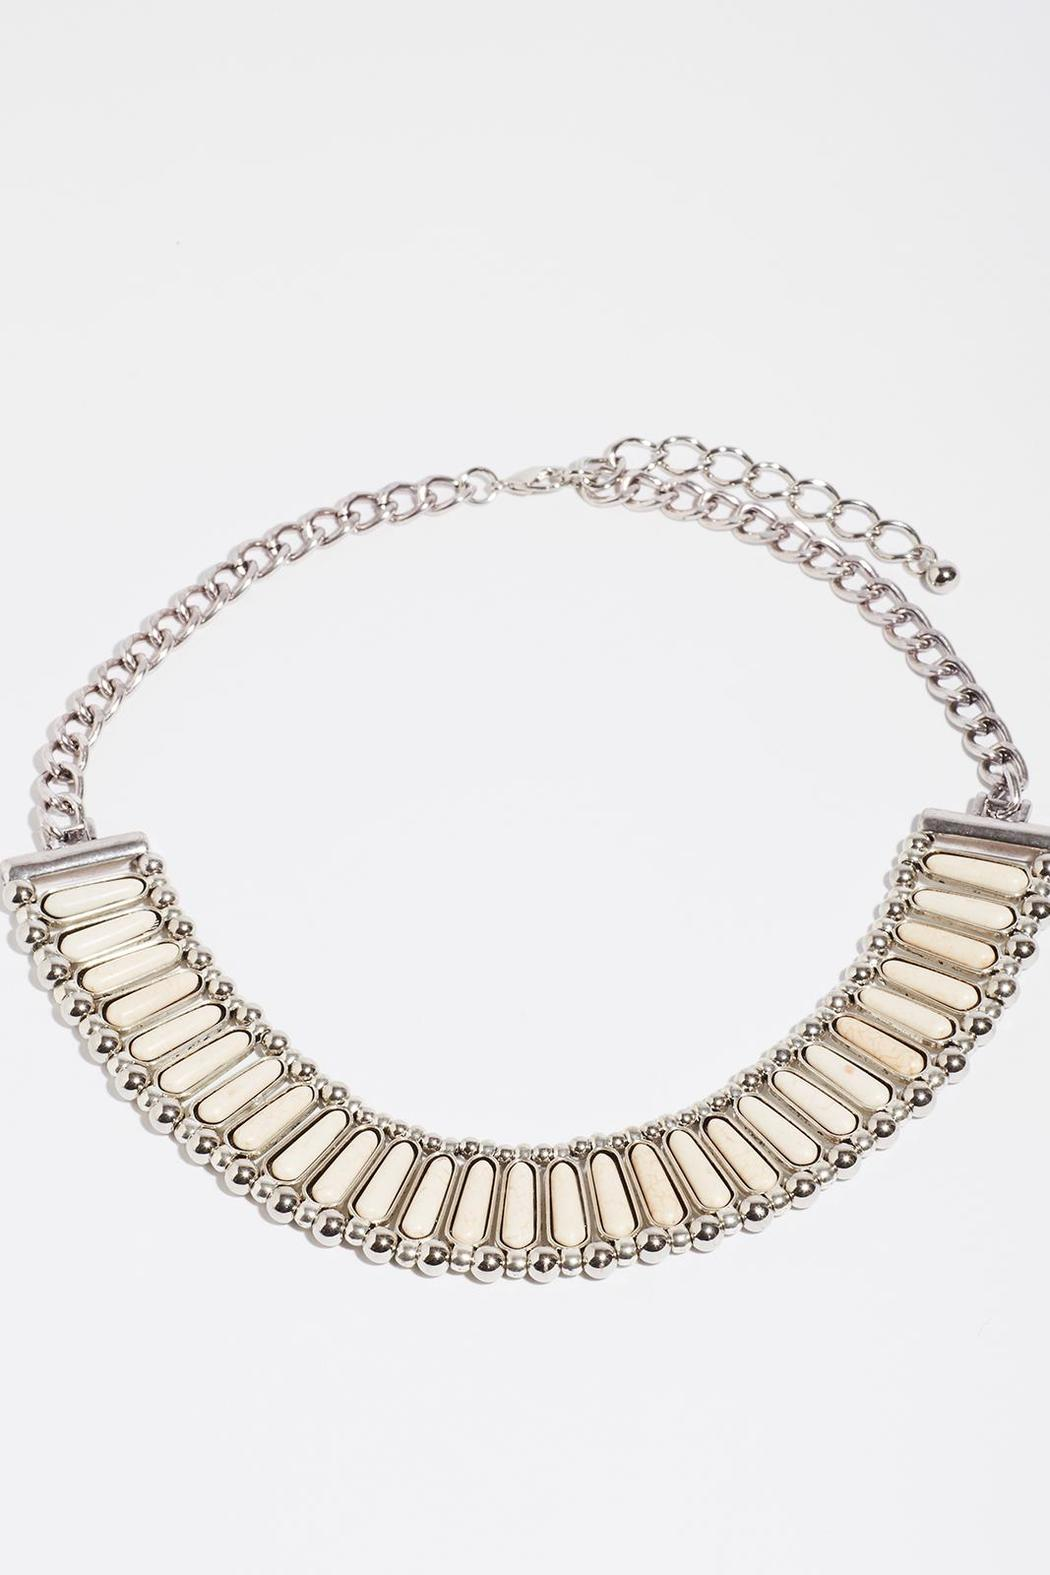 Fame Accessories Kindness Faux Ivory Necklace - Main Image